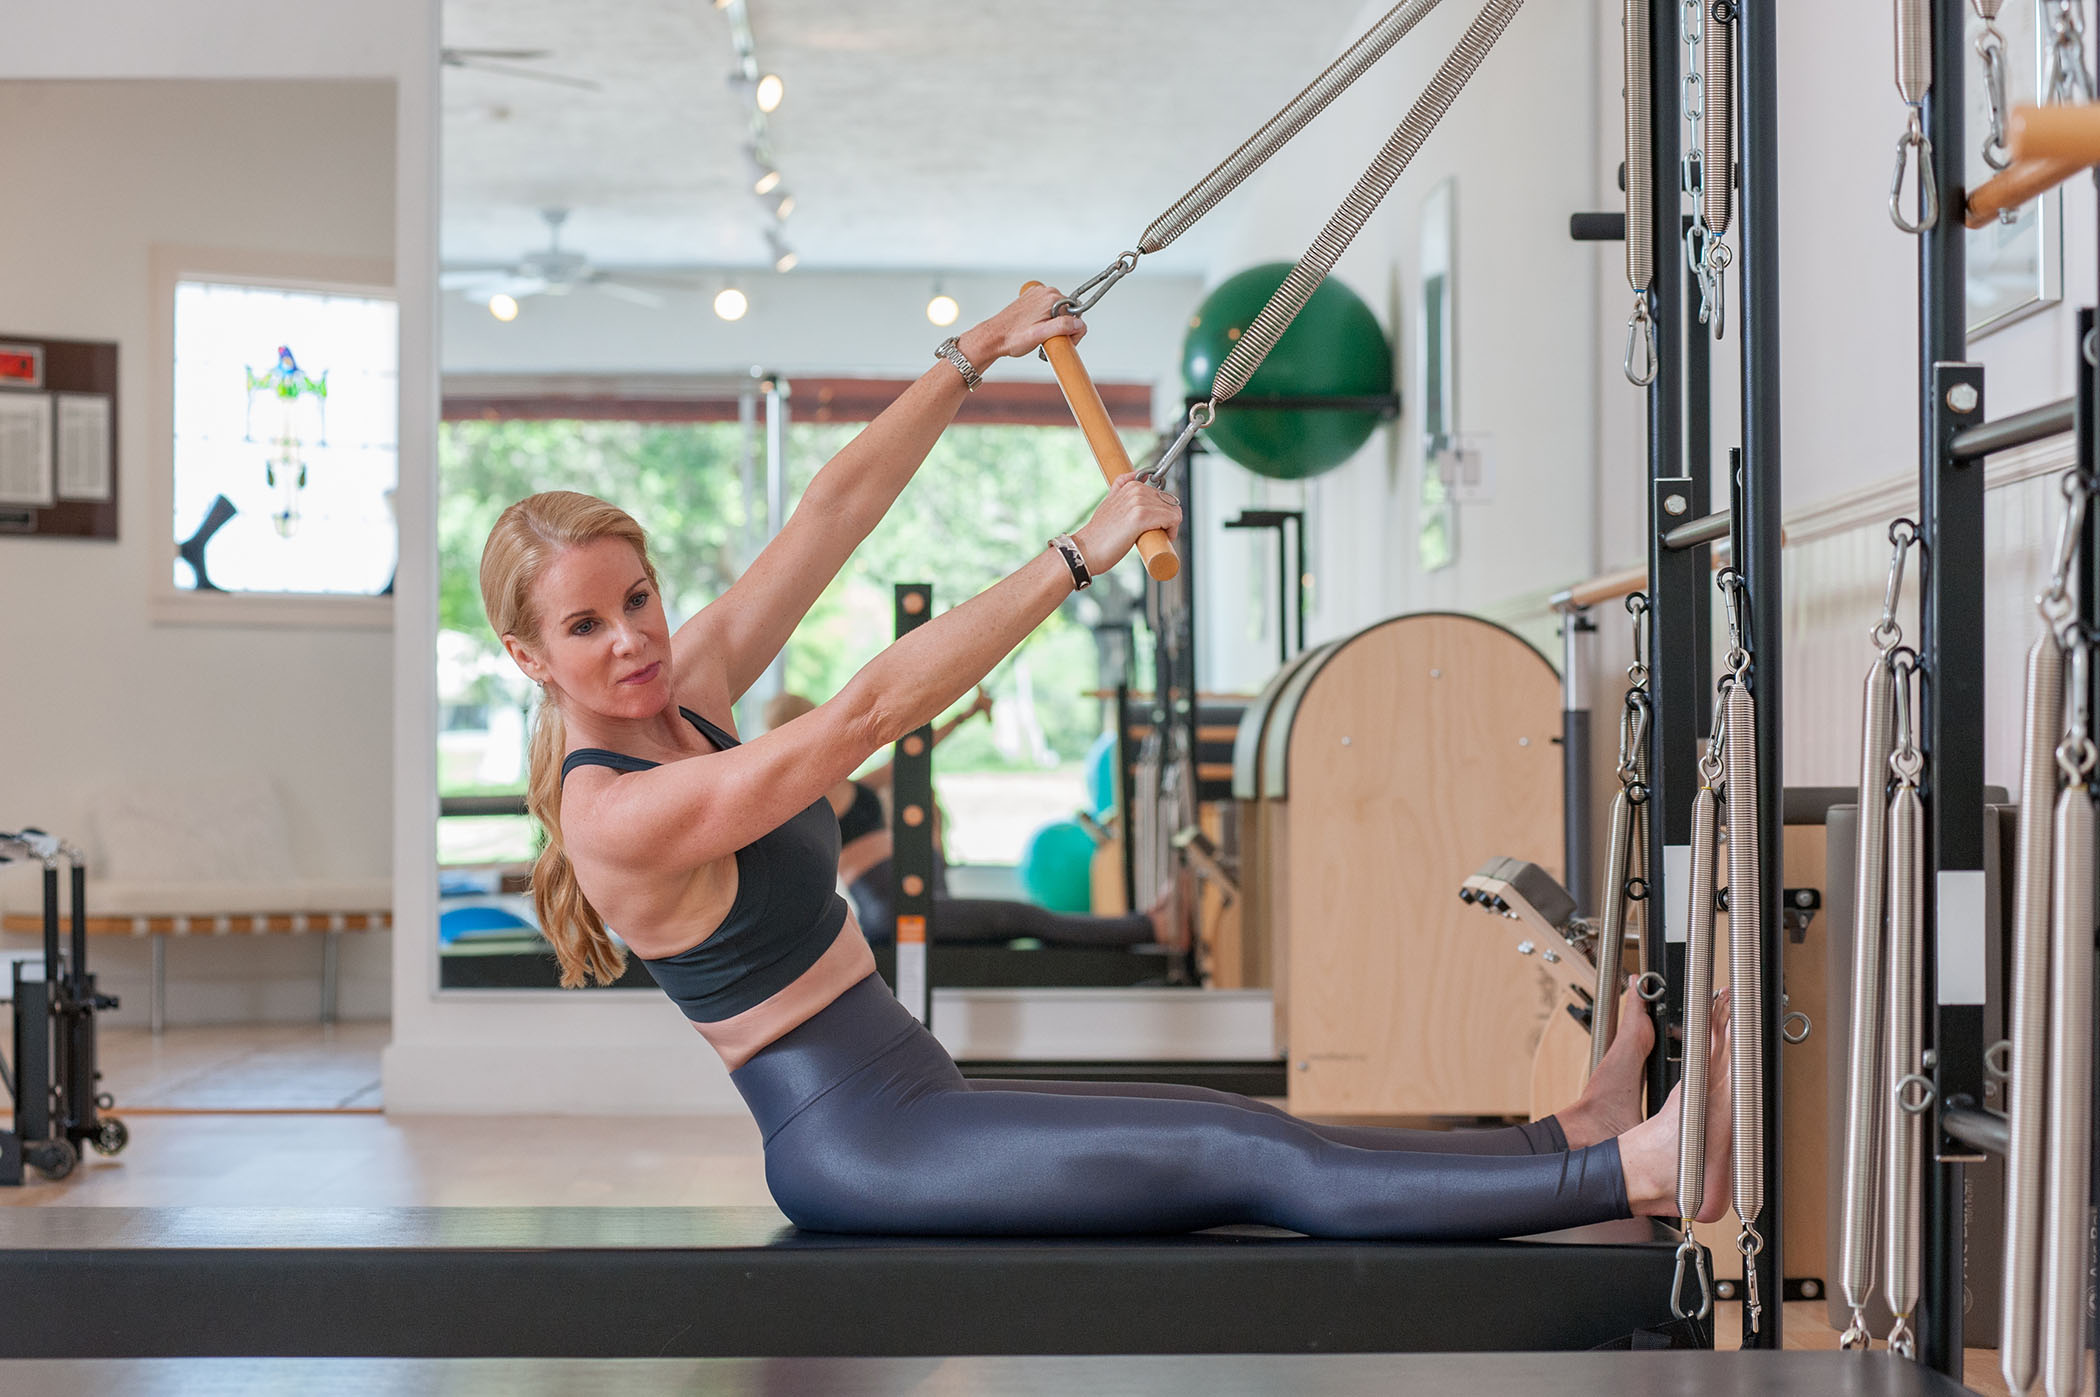 Add Pilates to your workout regime this fall with Nina Desloge-Day at the Pilates Works of Sarasota studio.